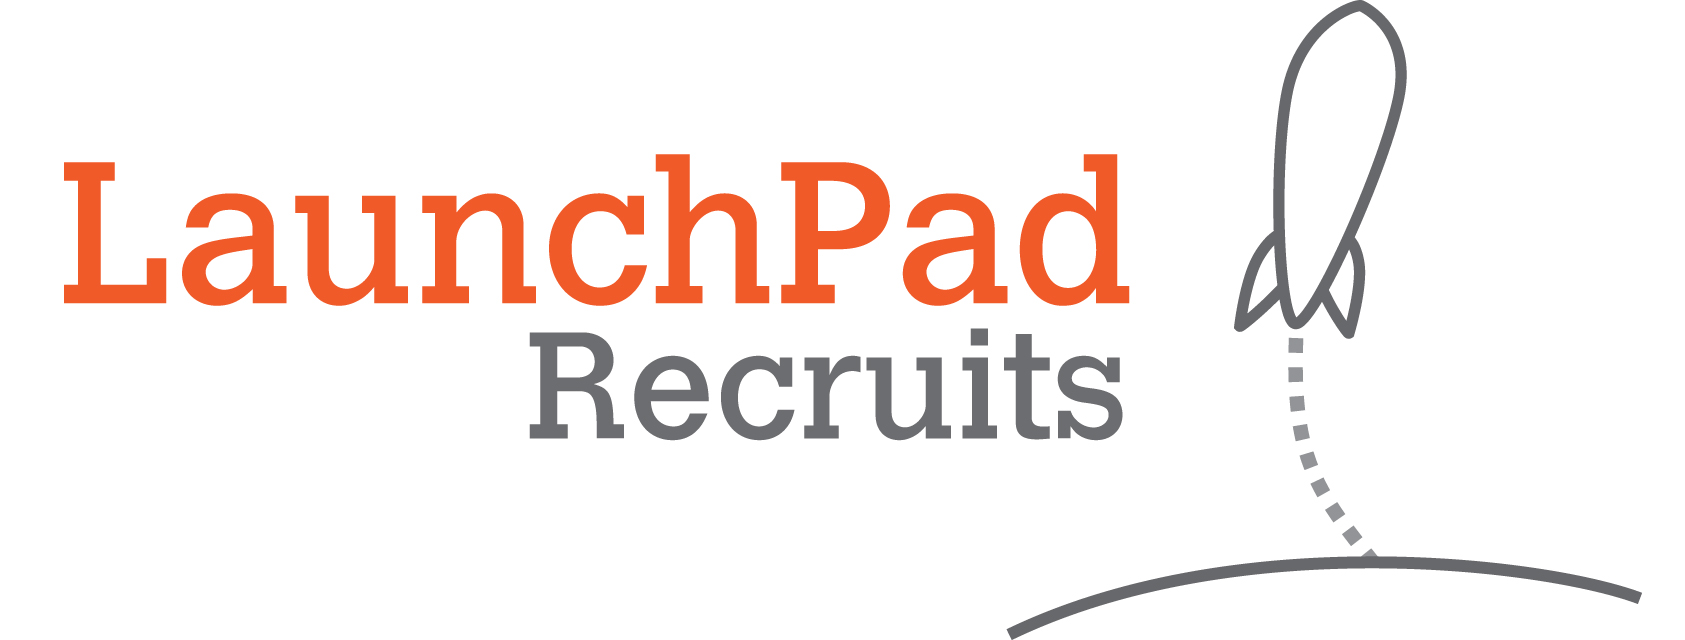 launchpad_recruits